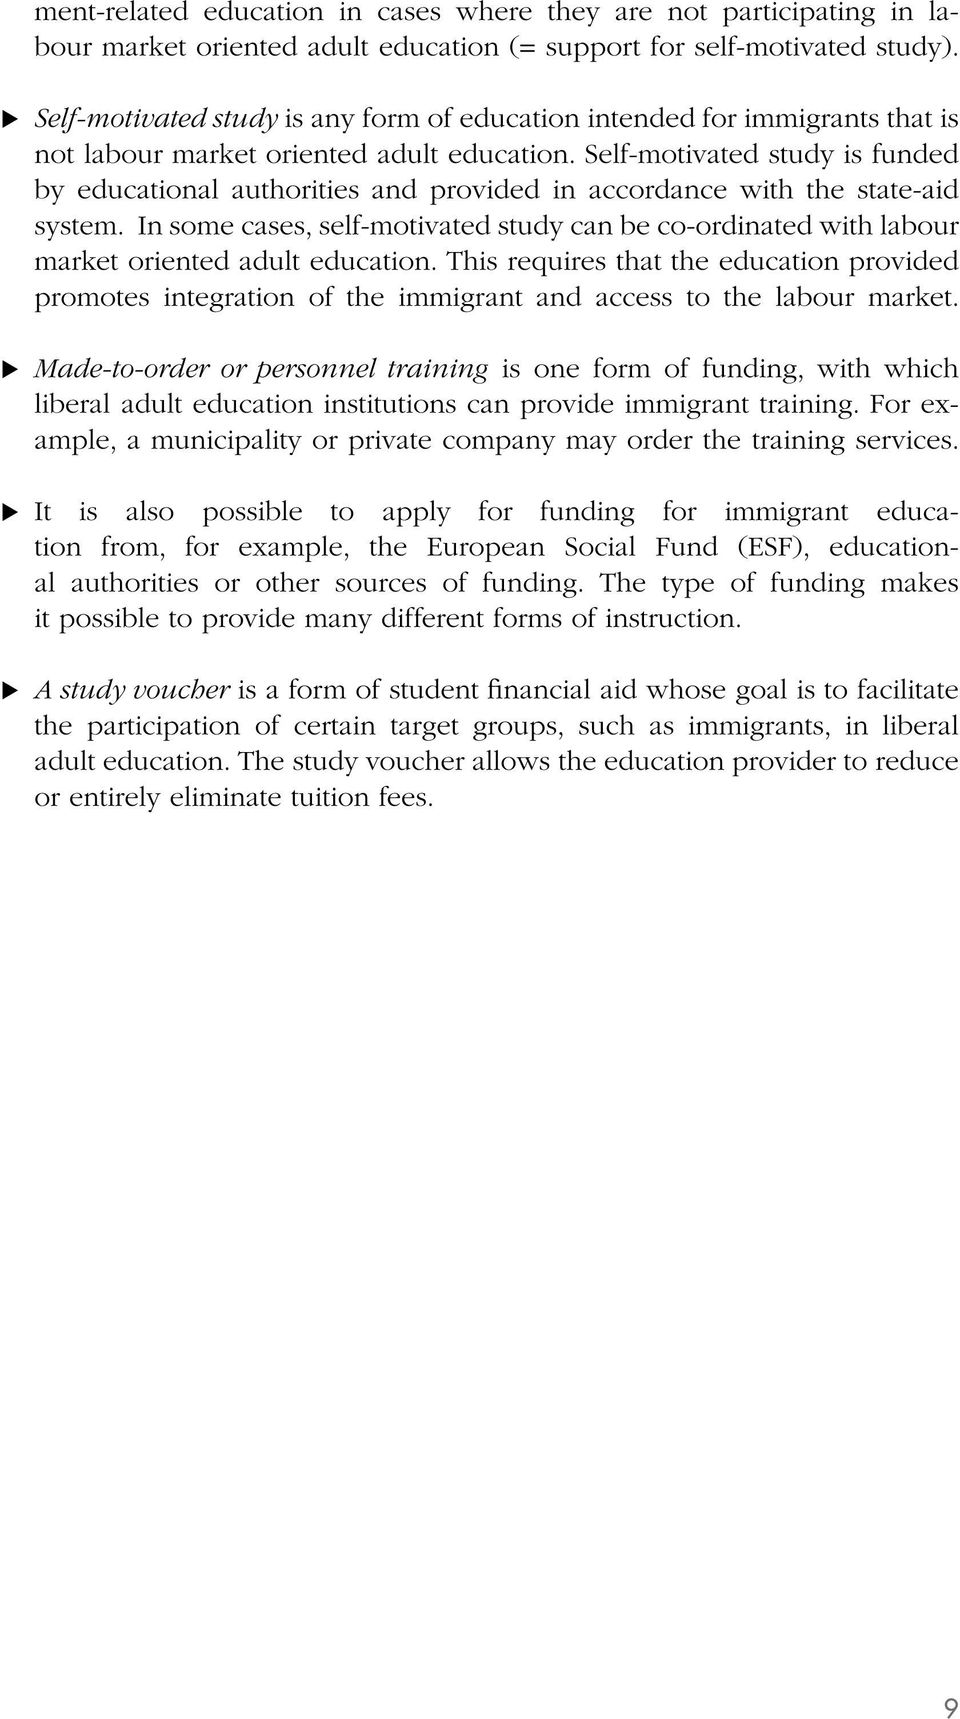 Self-motivated study is funded by educational authorities and provided in accordance with the state-aid system.